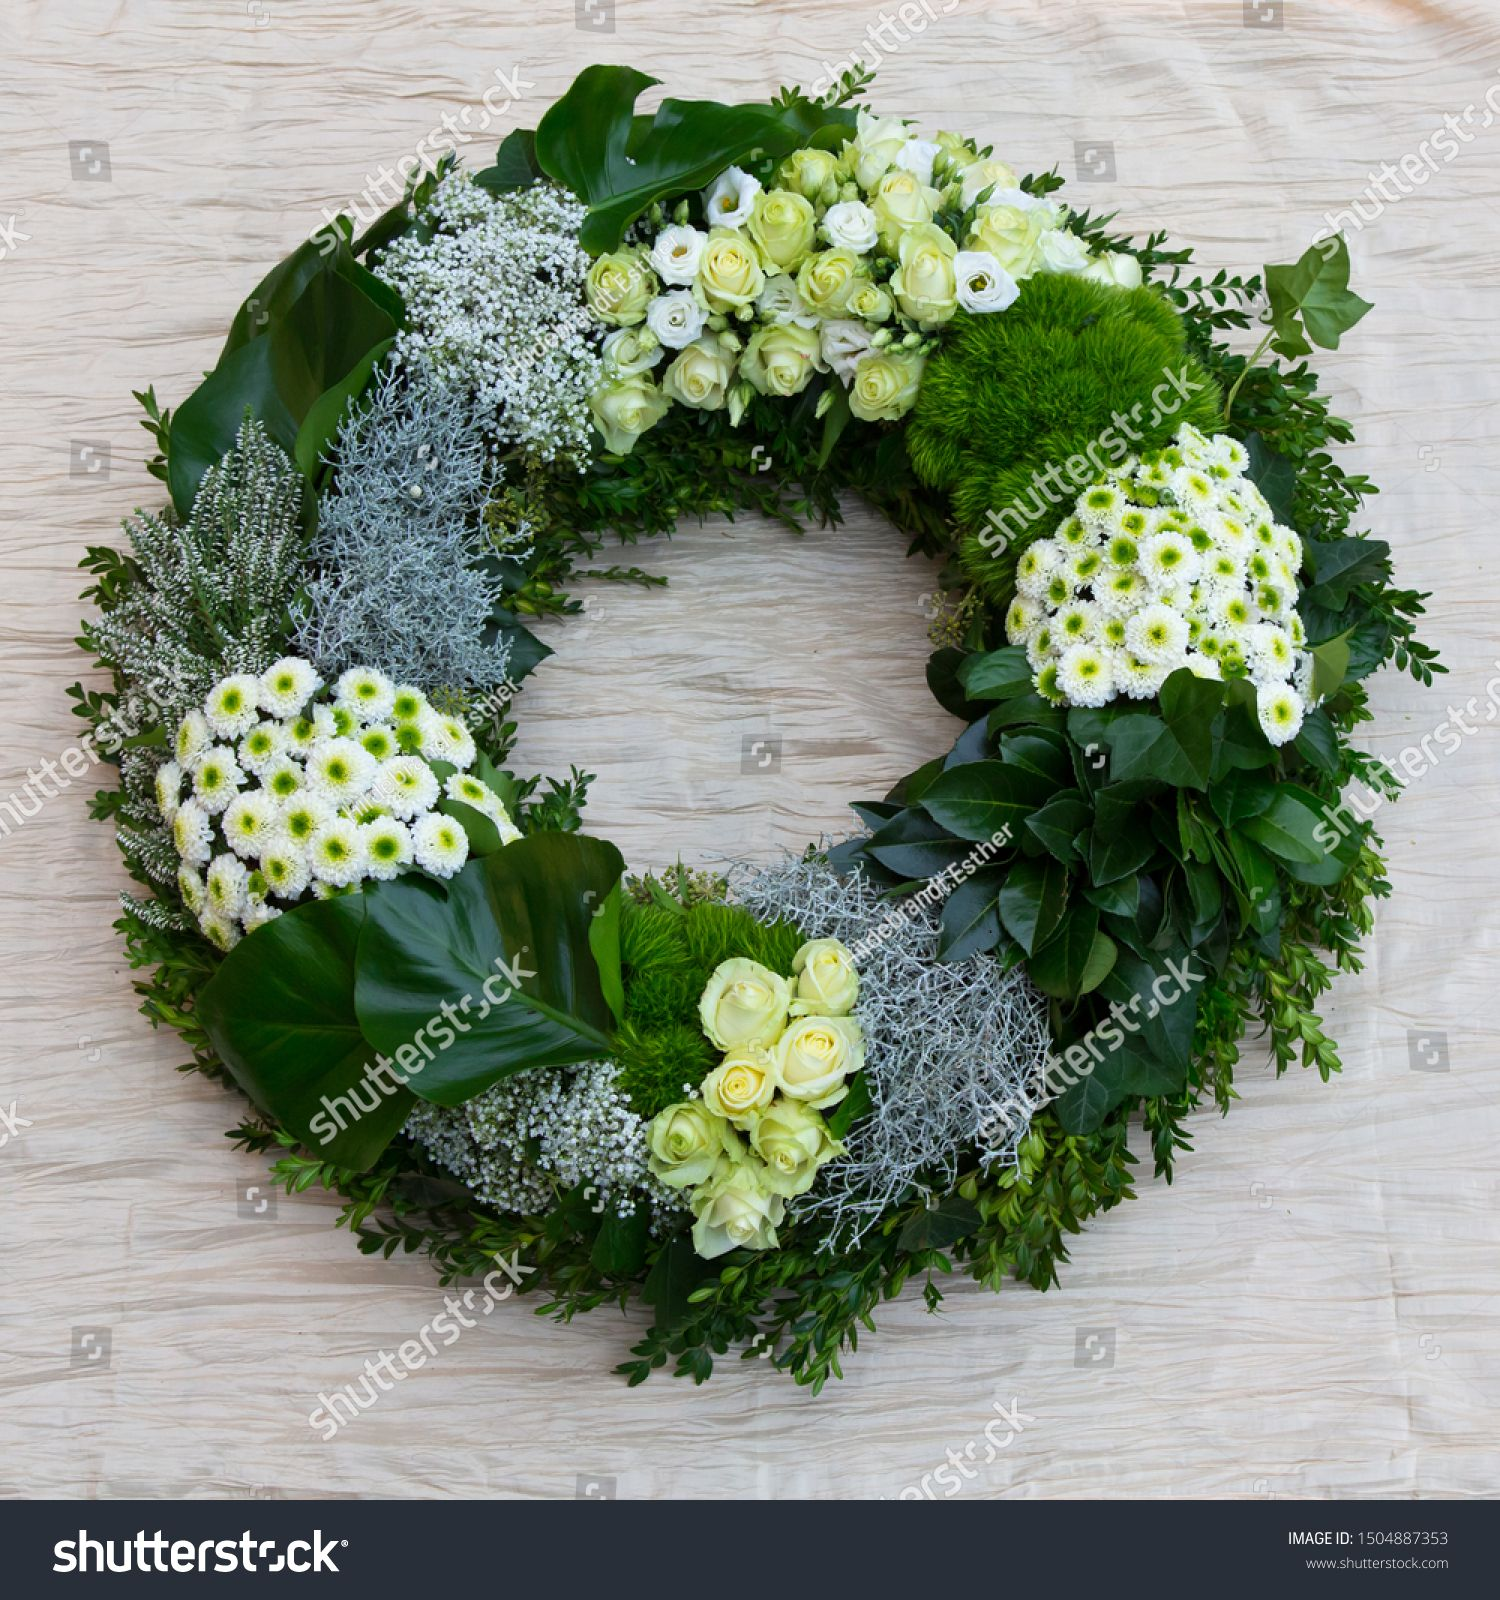 Funeral wreath with fresh flowers Sponsored , AD,